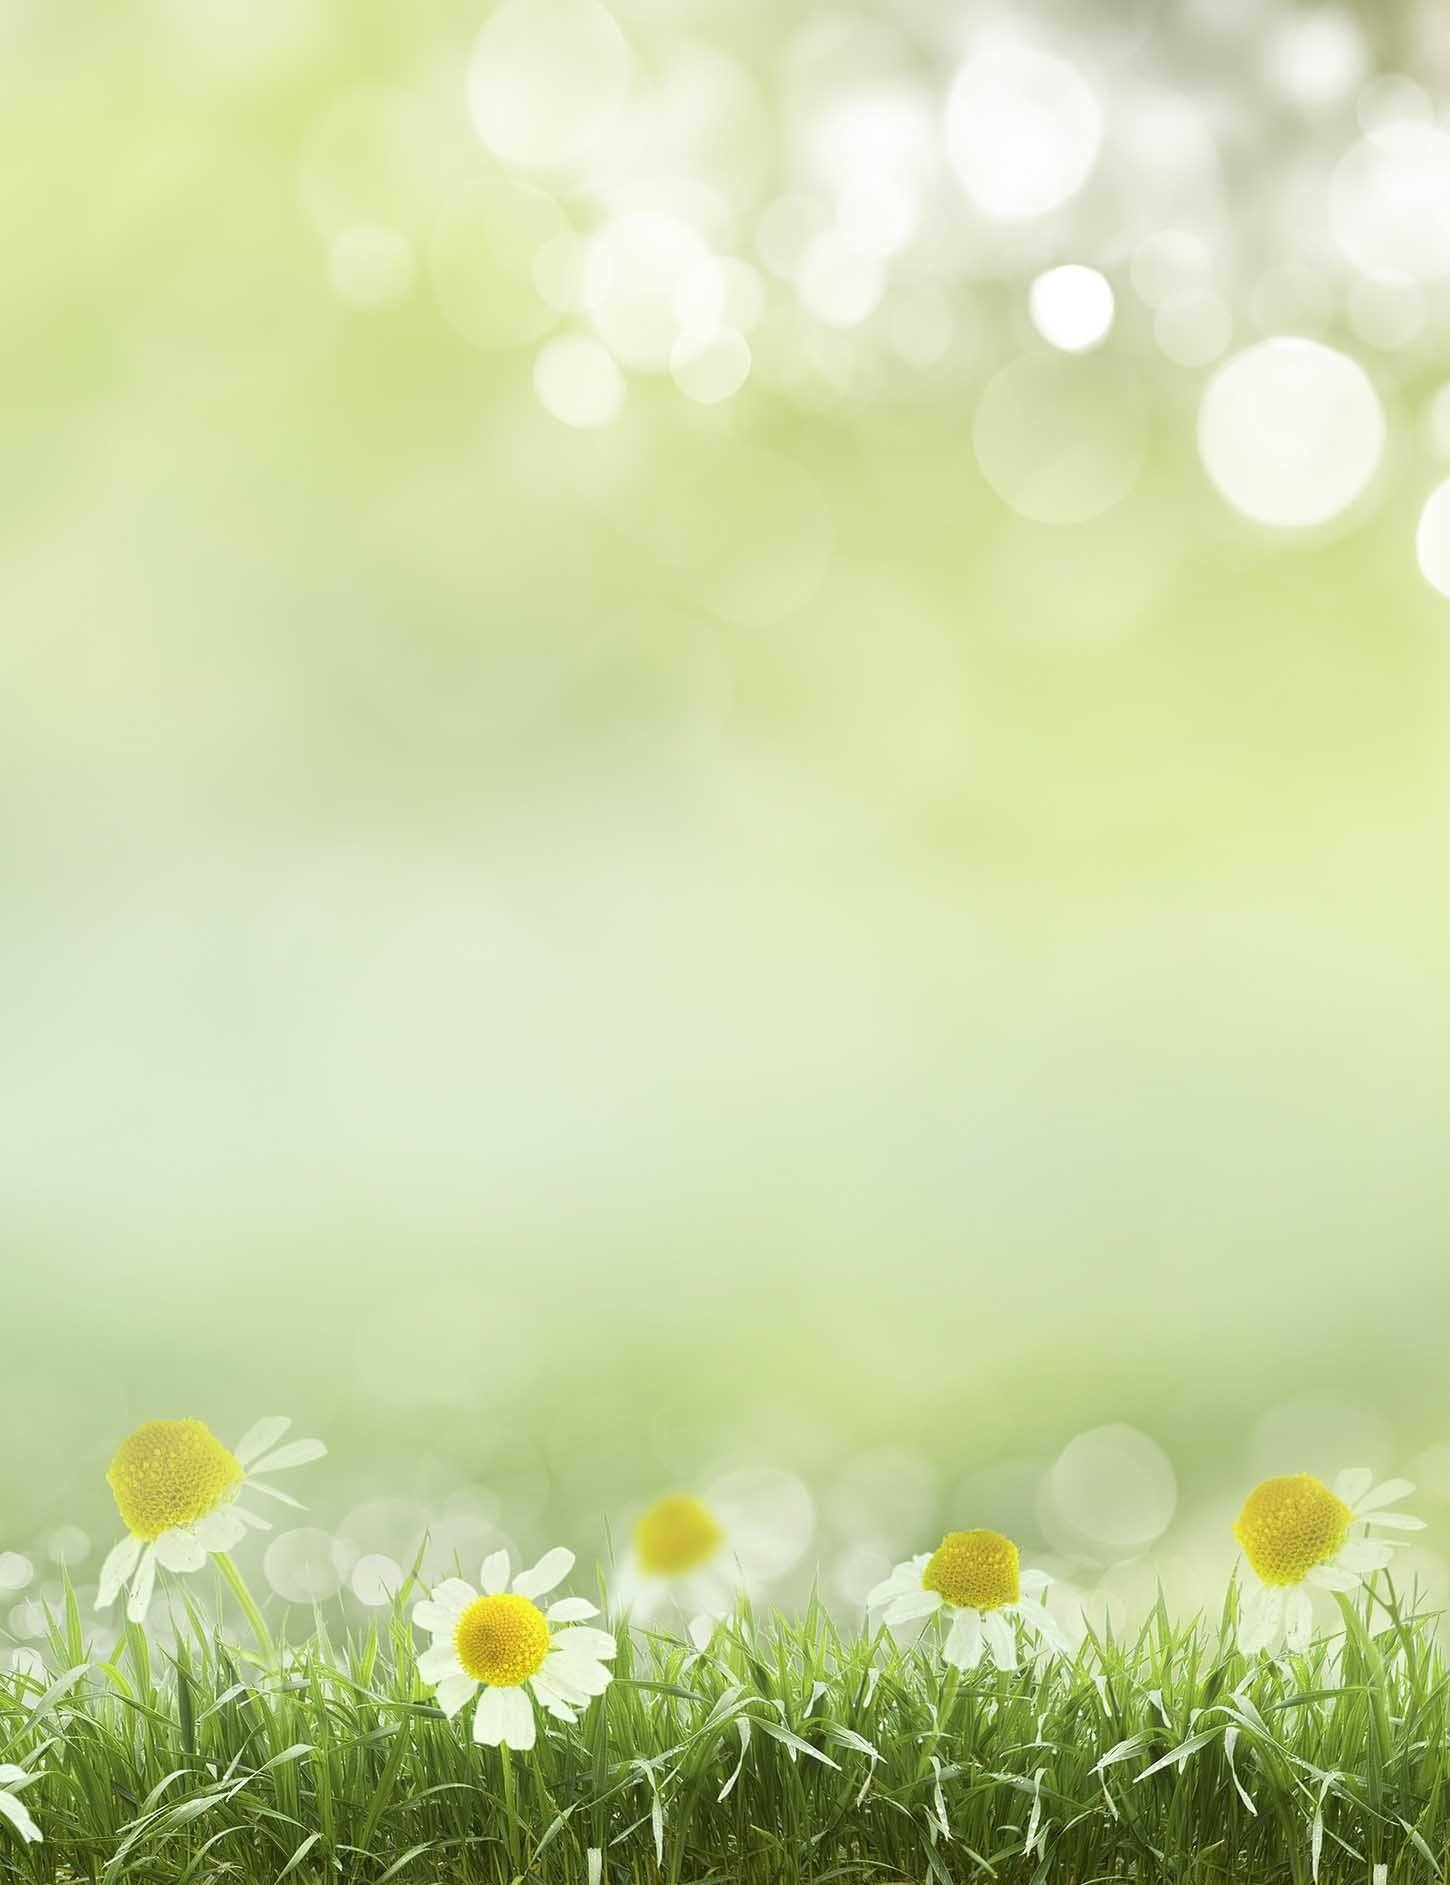 Bokeh flowers in sunshine spring background photography backdrop shop backdrop